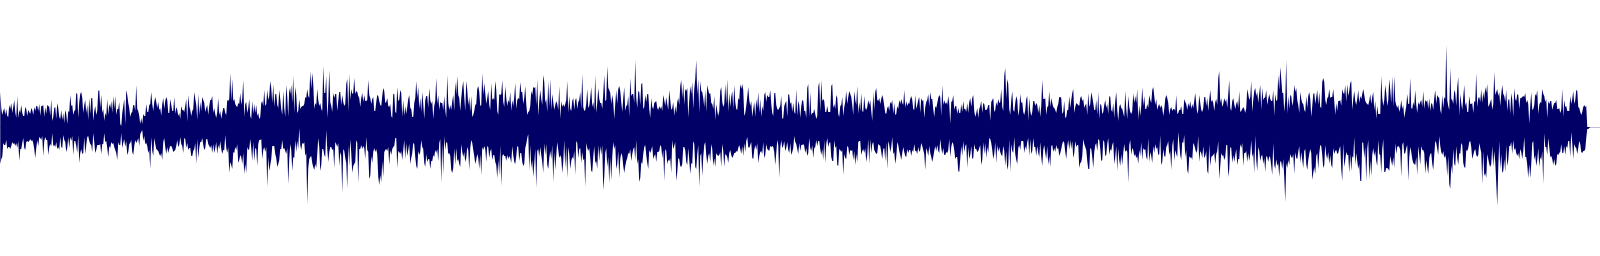 waveform of track #126860